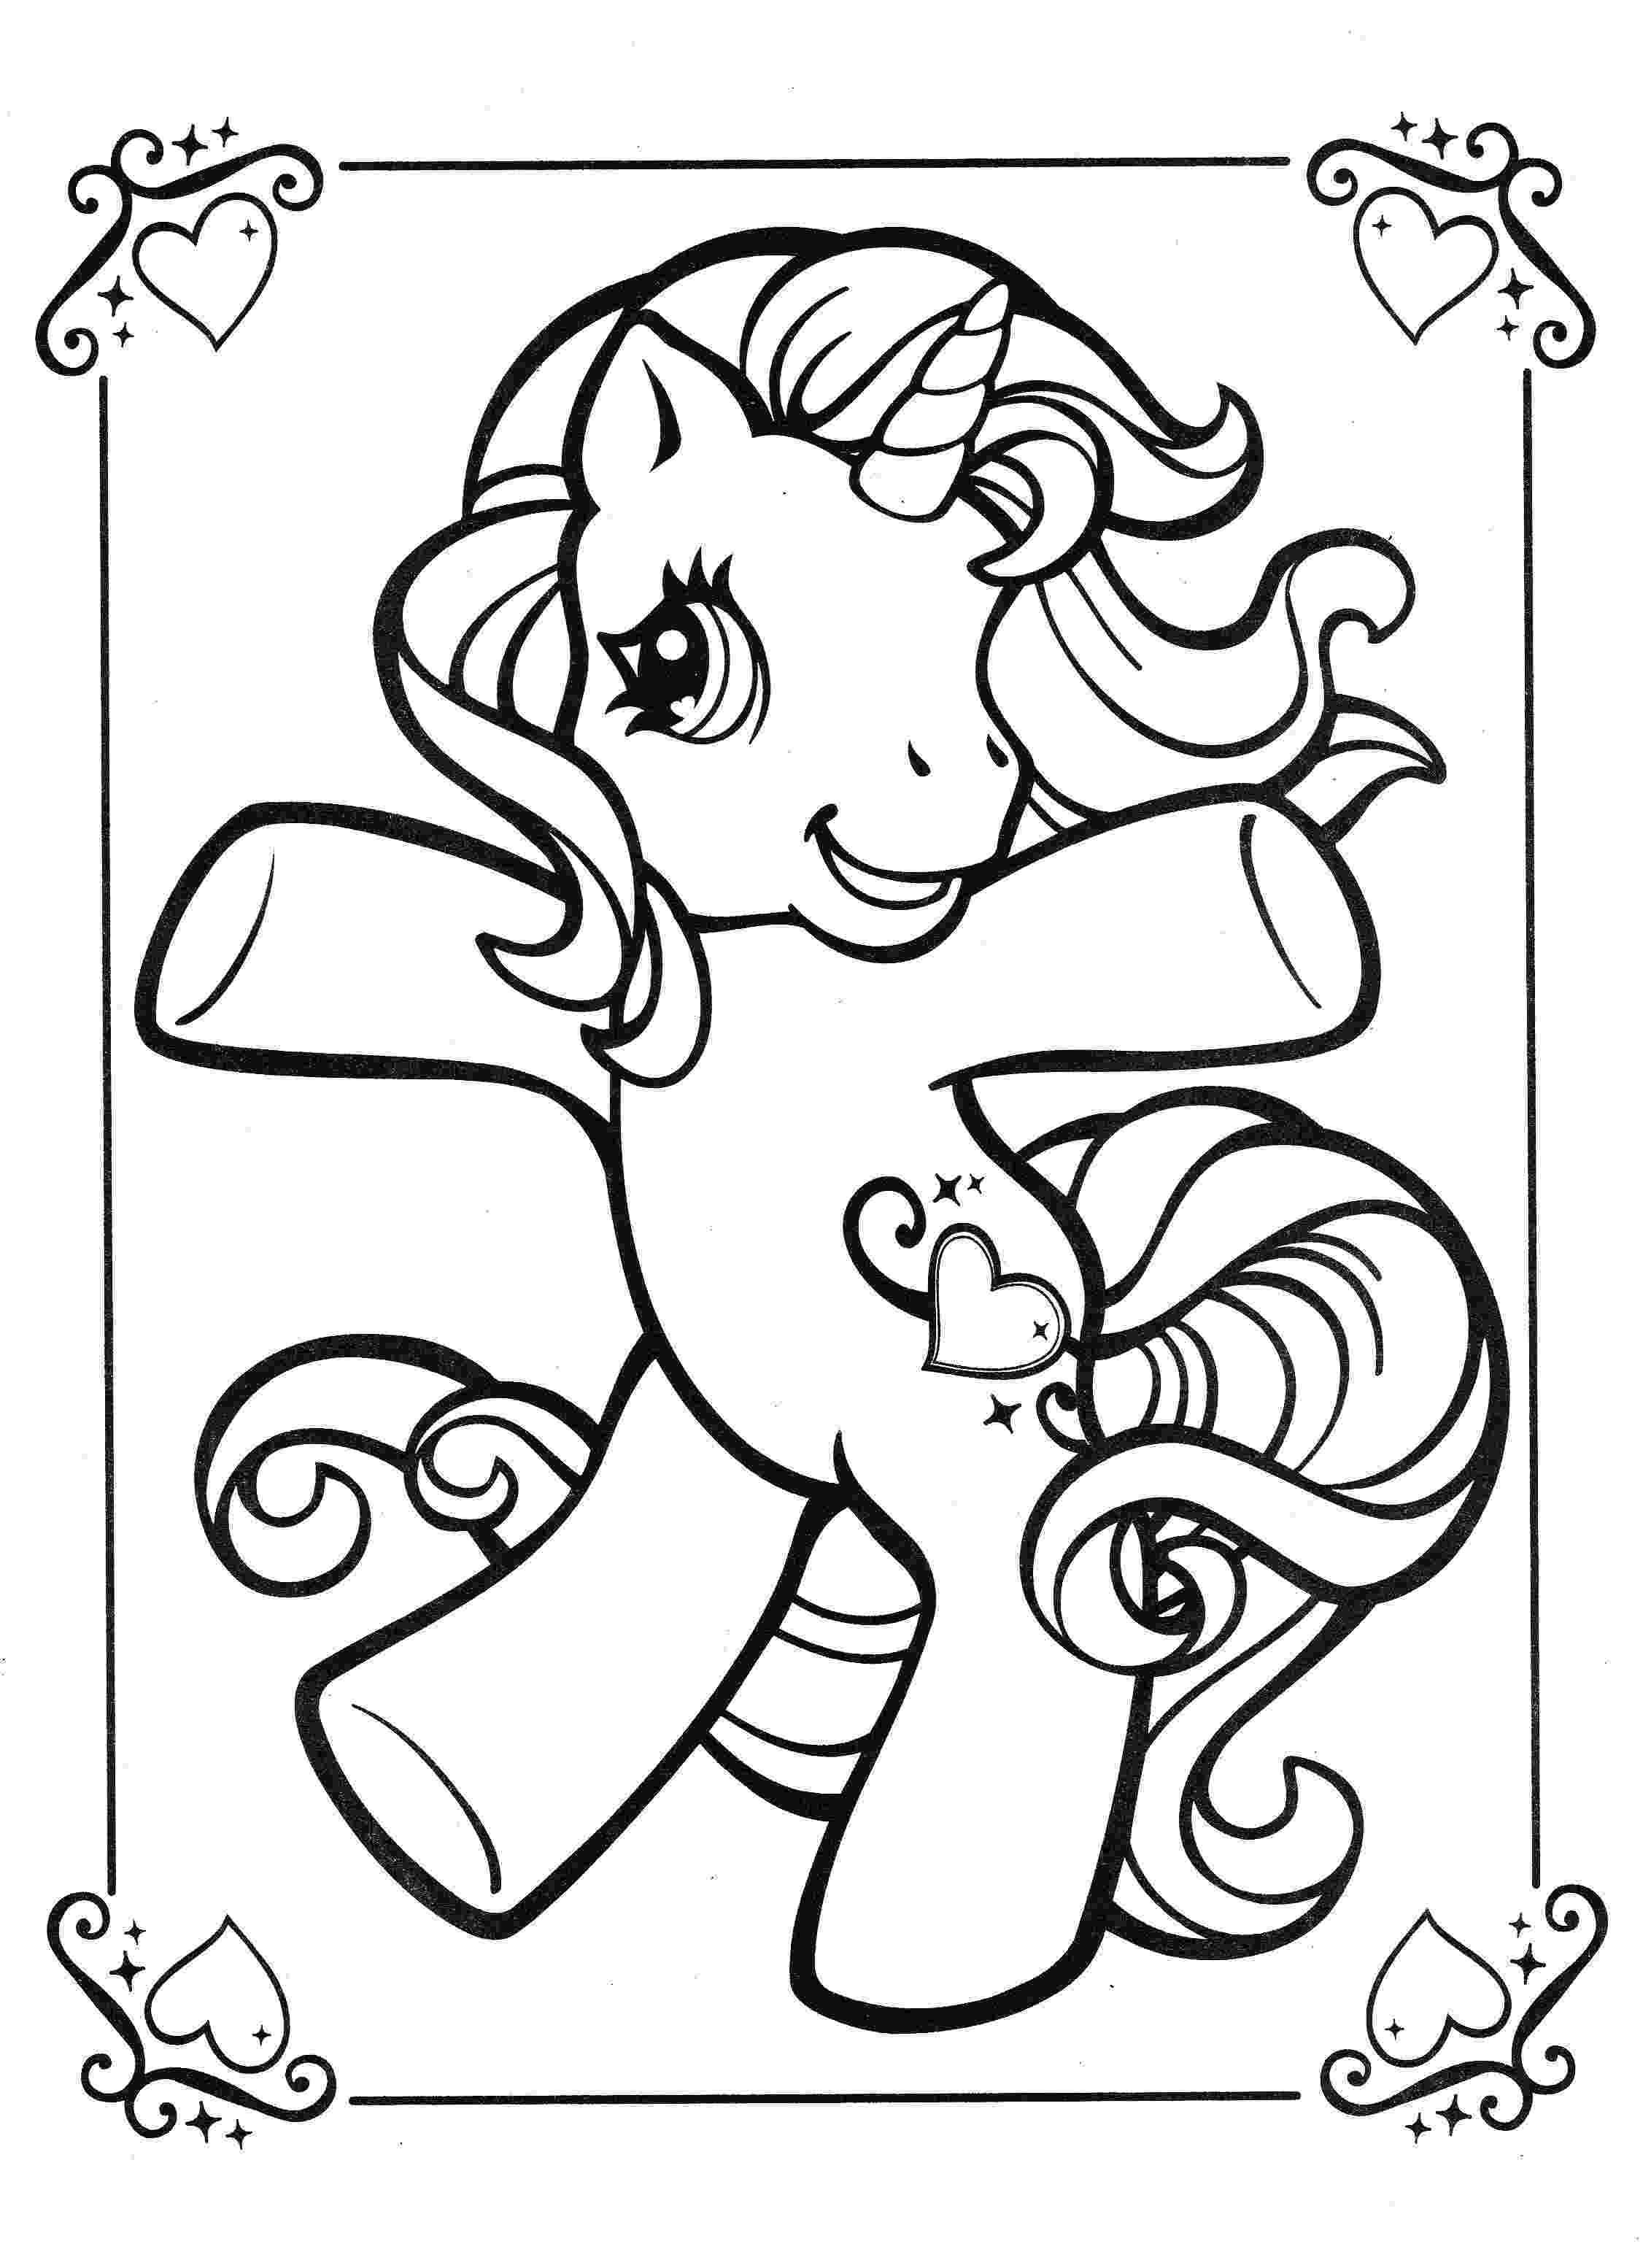 mlp coloring book games my little pony coloring page mlp sweetie belle my book games coloring mlp